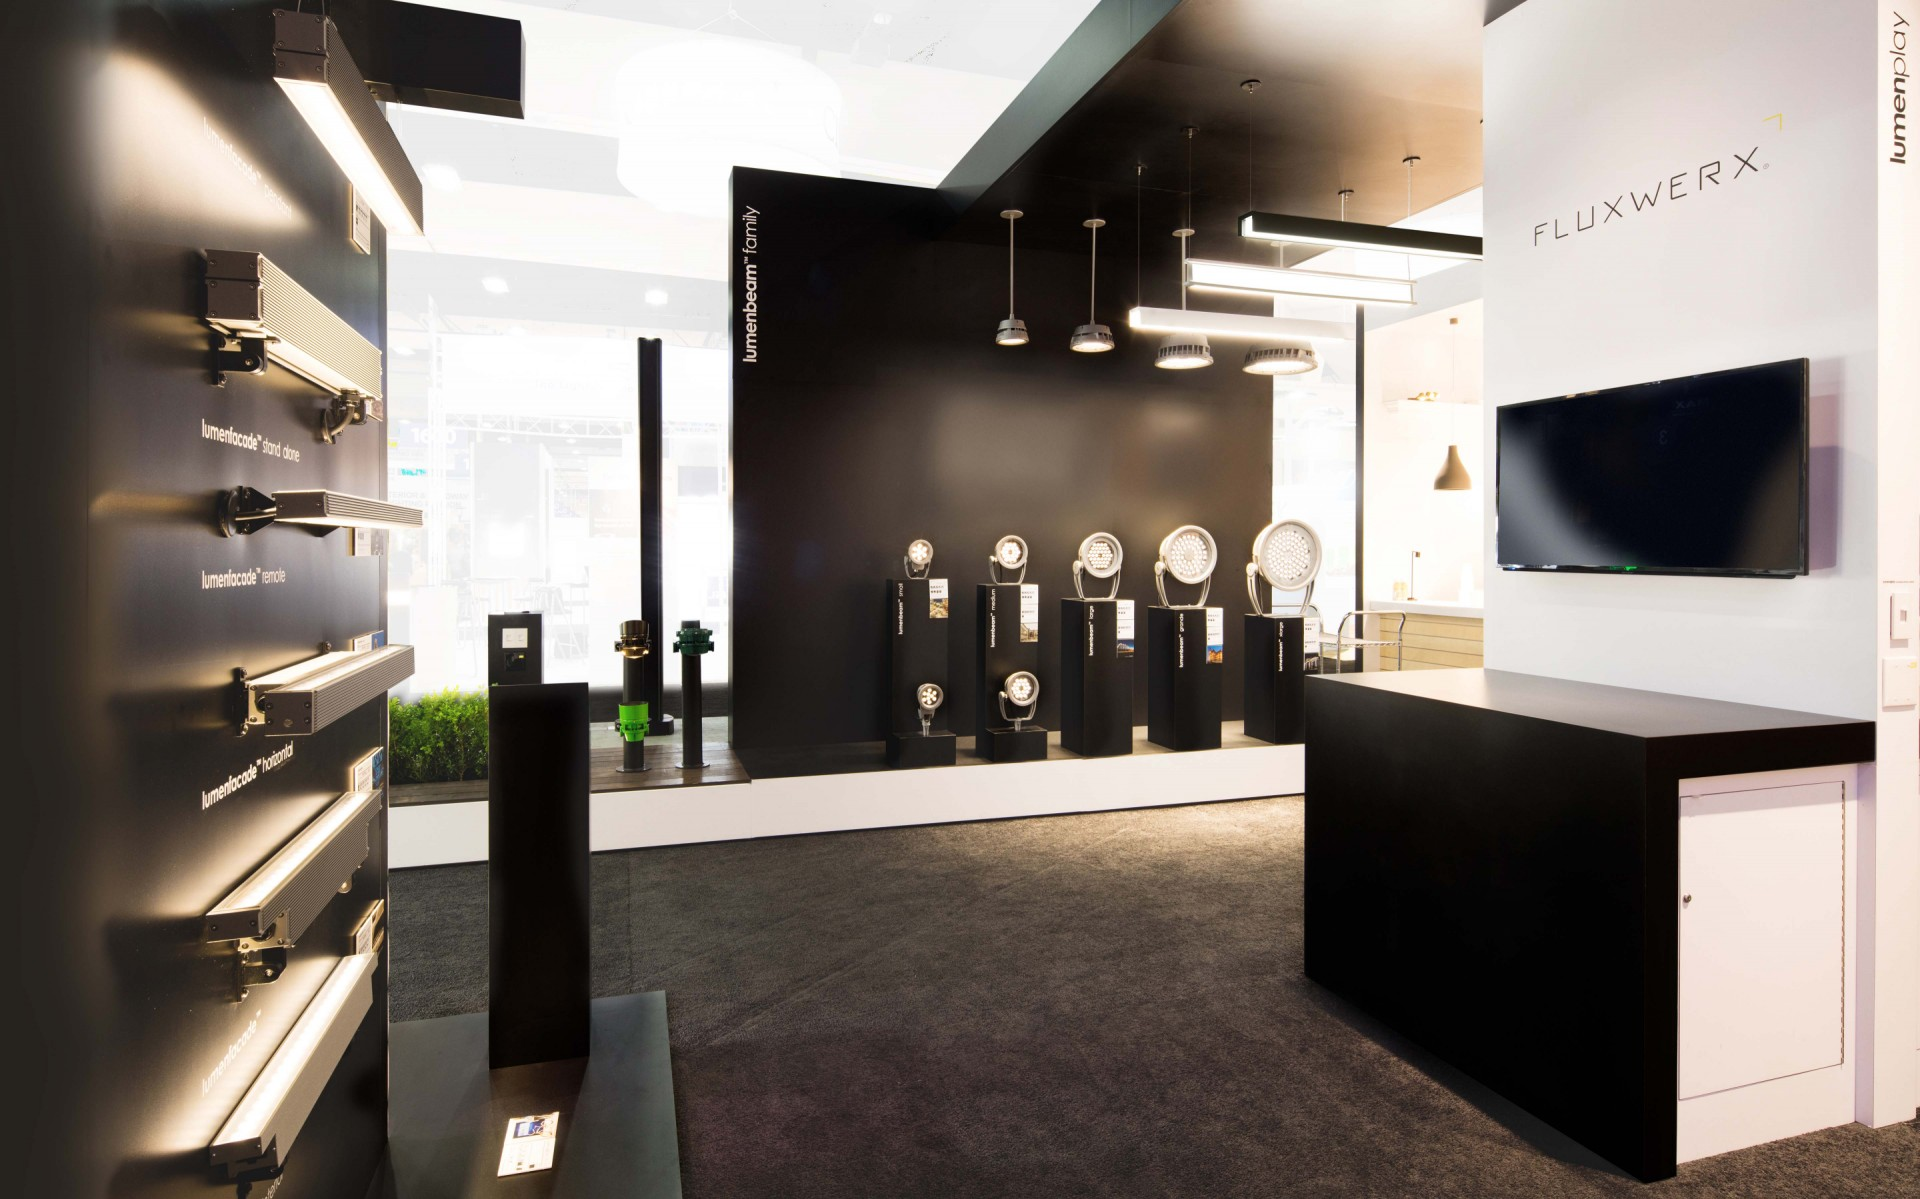 """""""With new optical innovations, and by welcoming to the family exciting brands like Fluxwerx and Exenia, we're allowing specifiers to unleash their full lighting design creativity, """" said Francois-Xavier Souvay, President and CEO of Lumenpulse."""